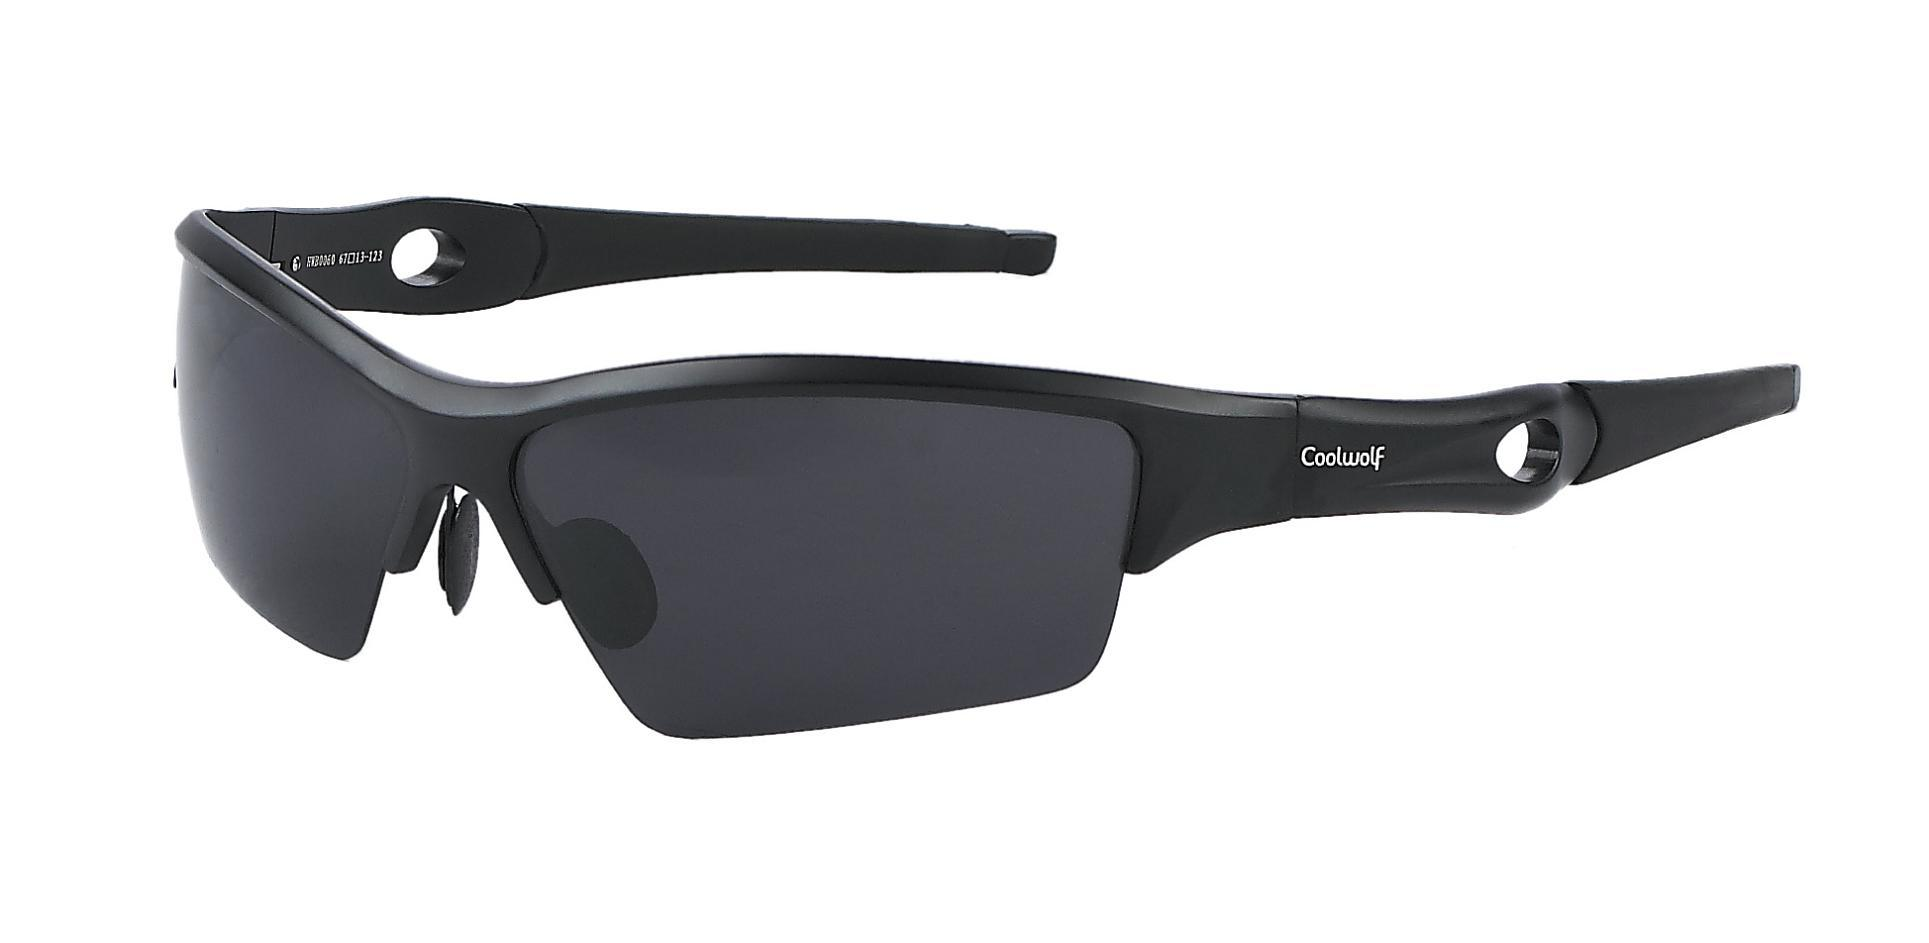 hplmw Cheap Real Oakleys - Survivor Industries